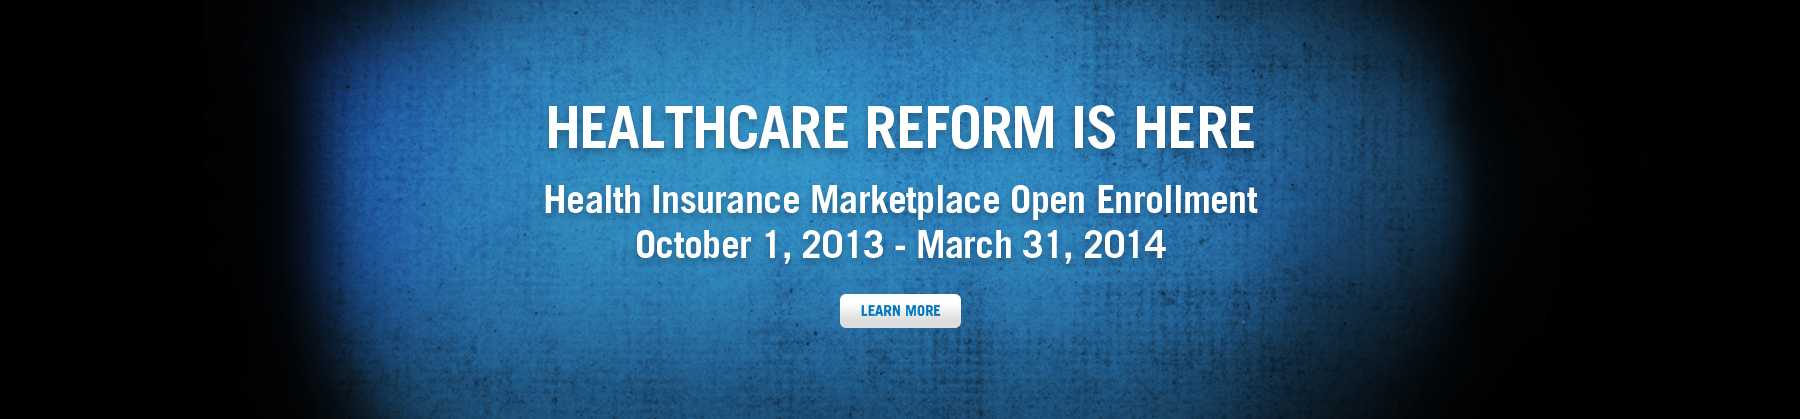 Healthcare Reform is Here